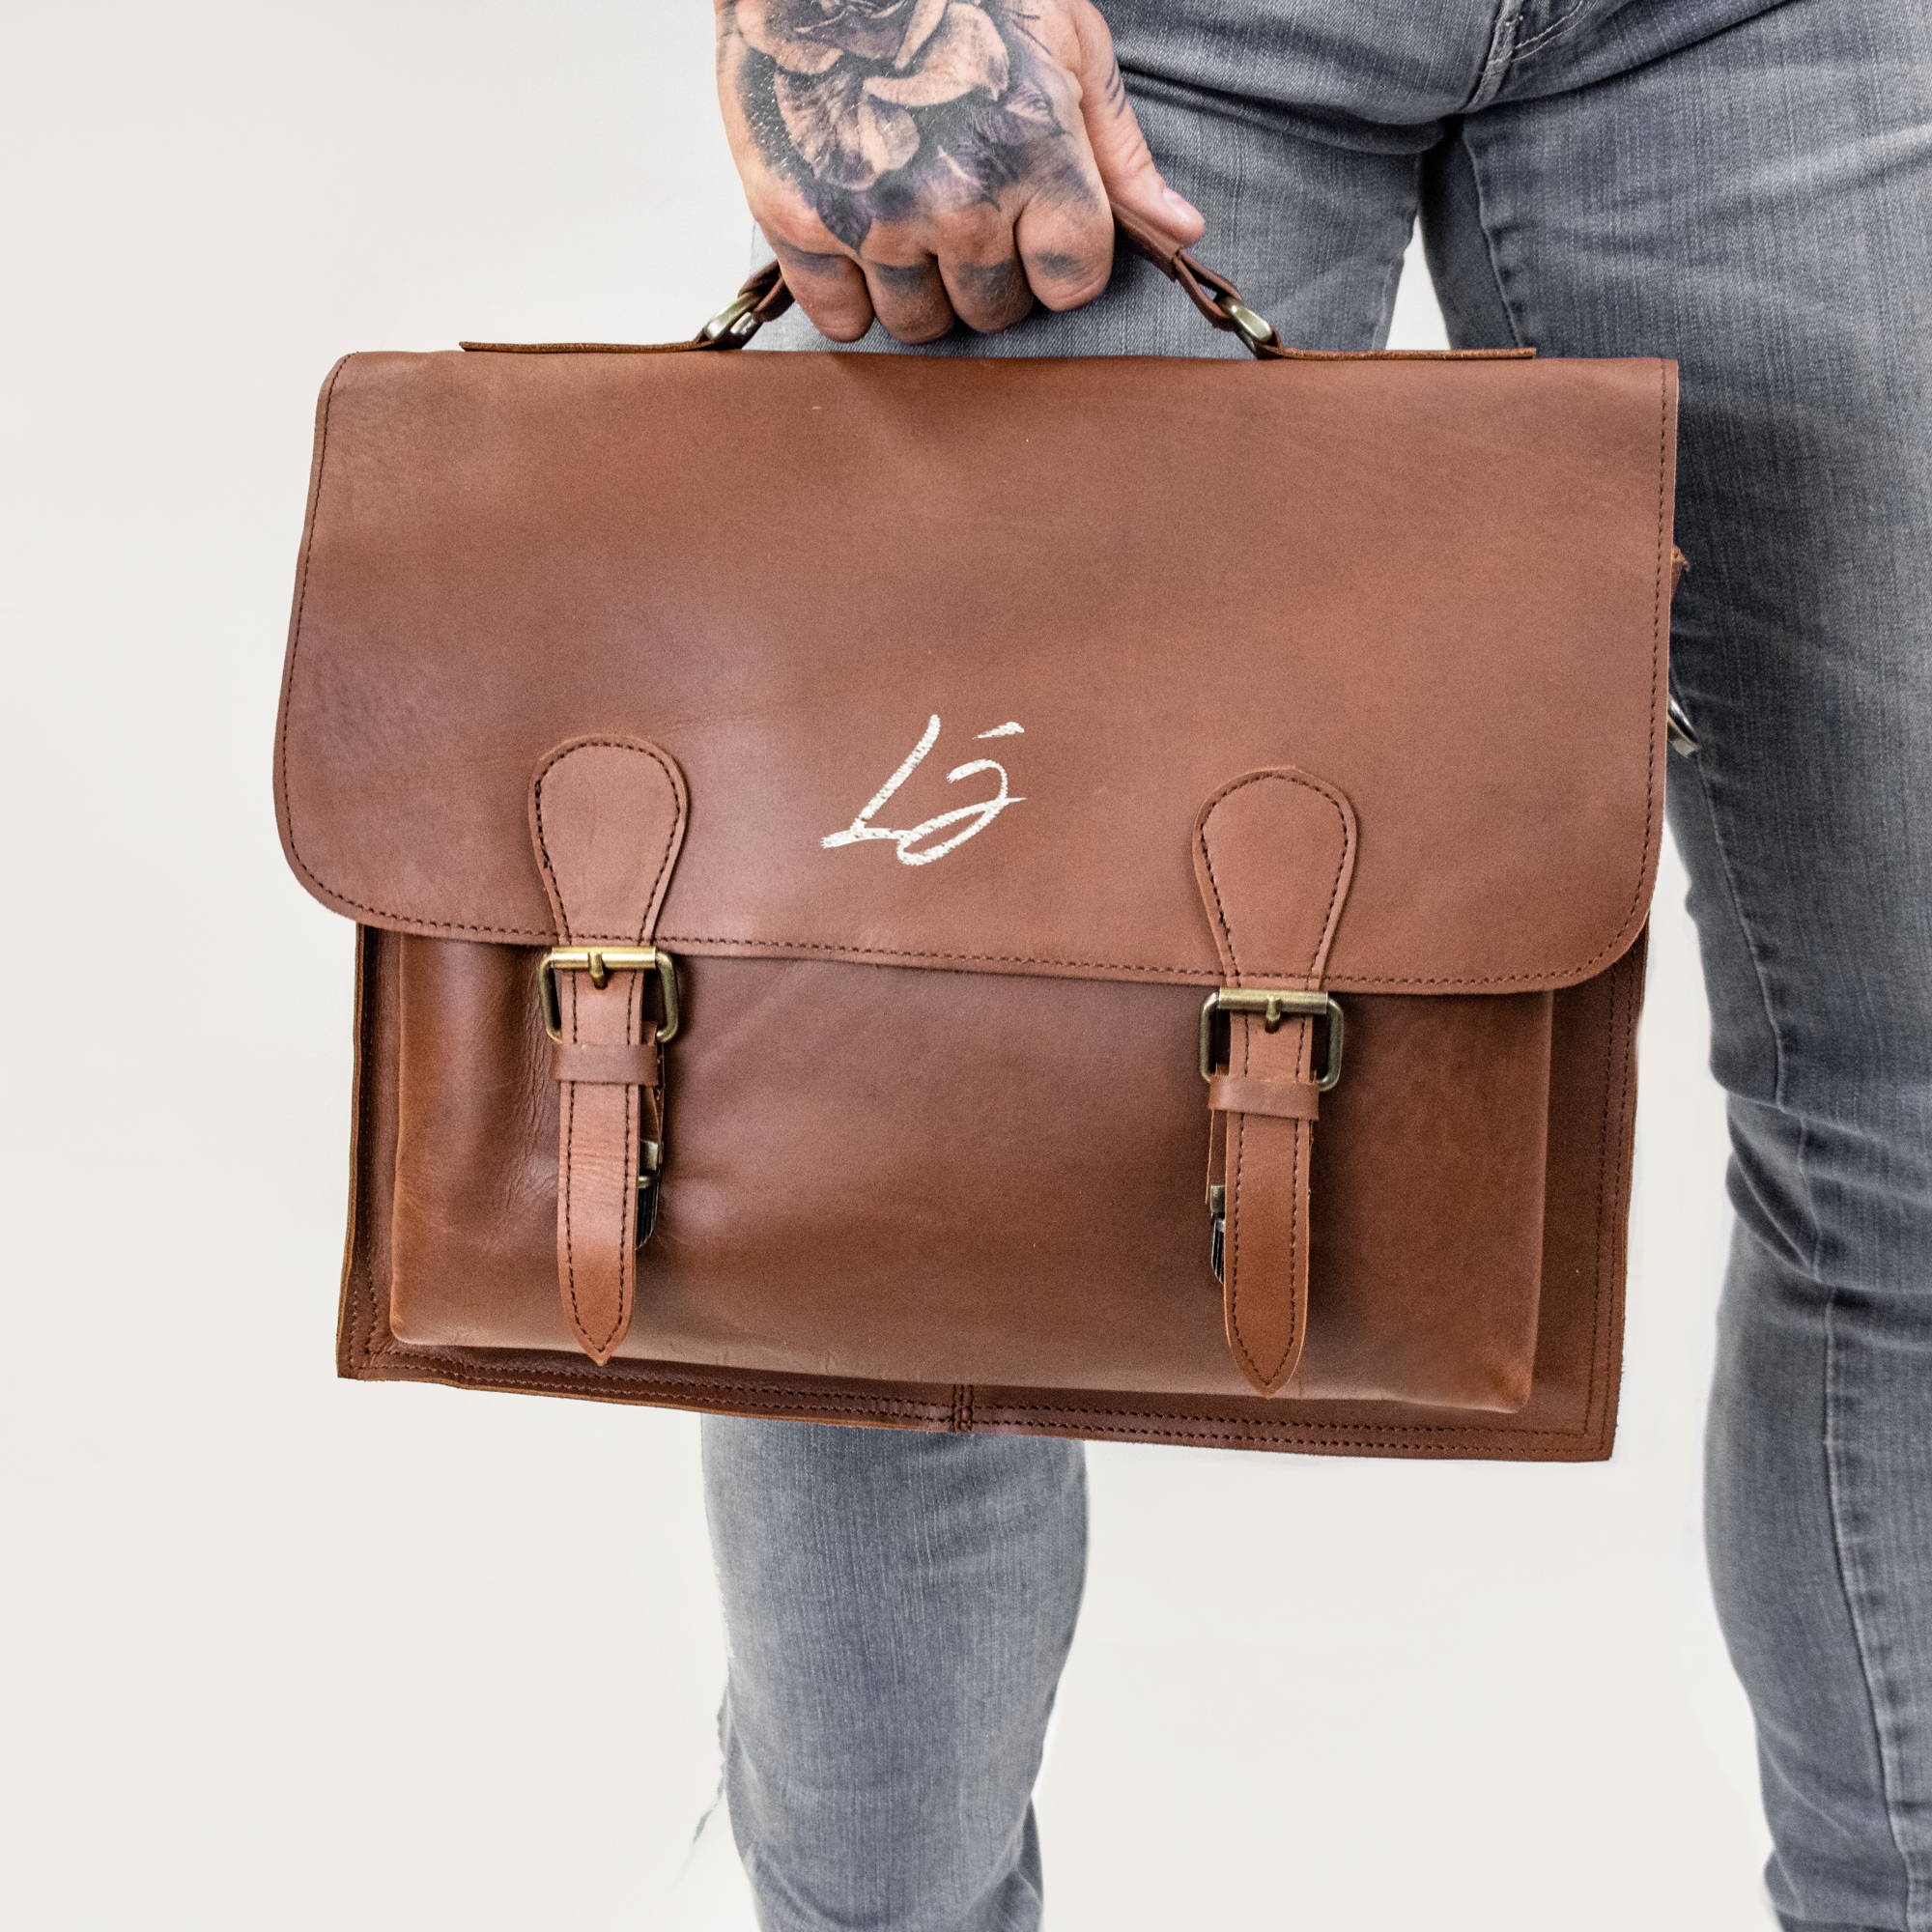 Branded Leather Satchel